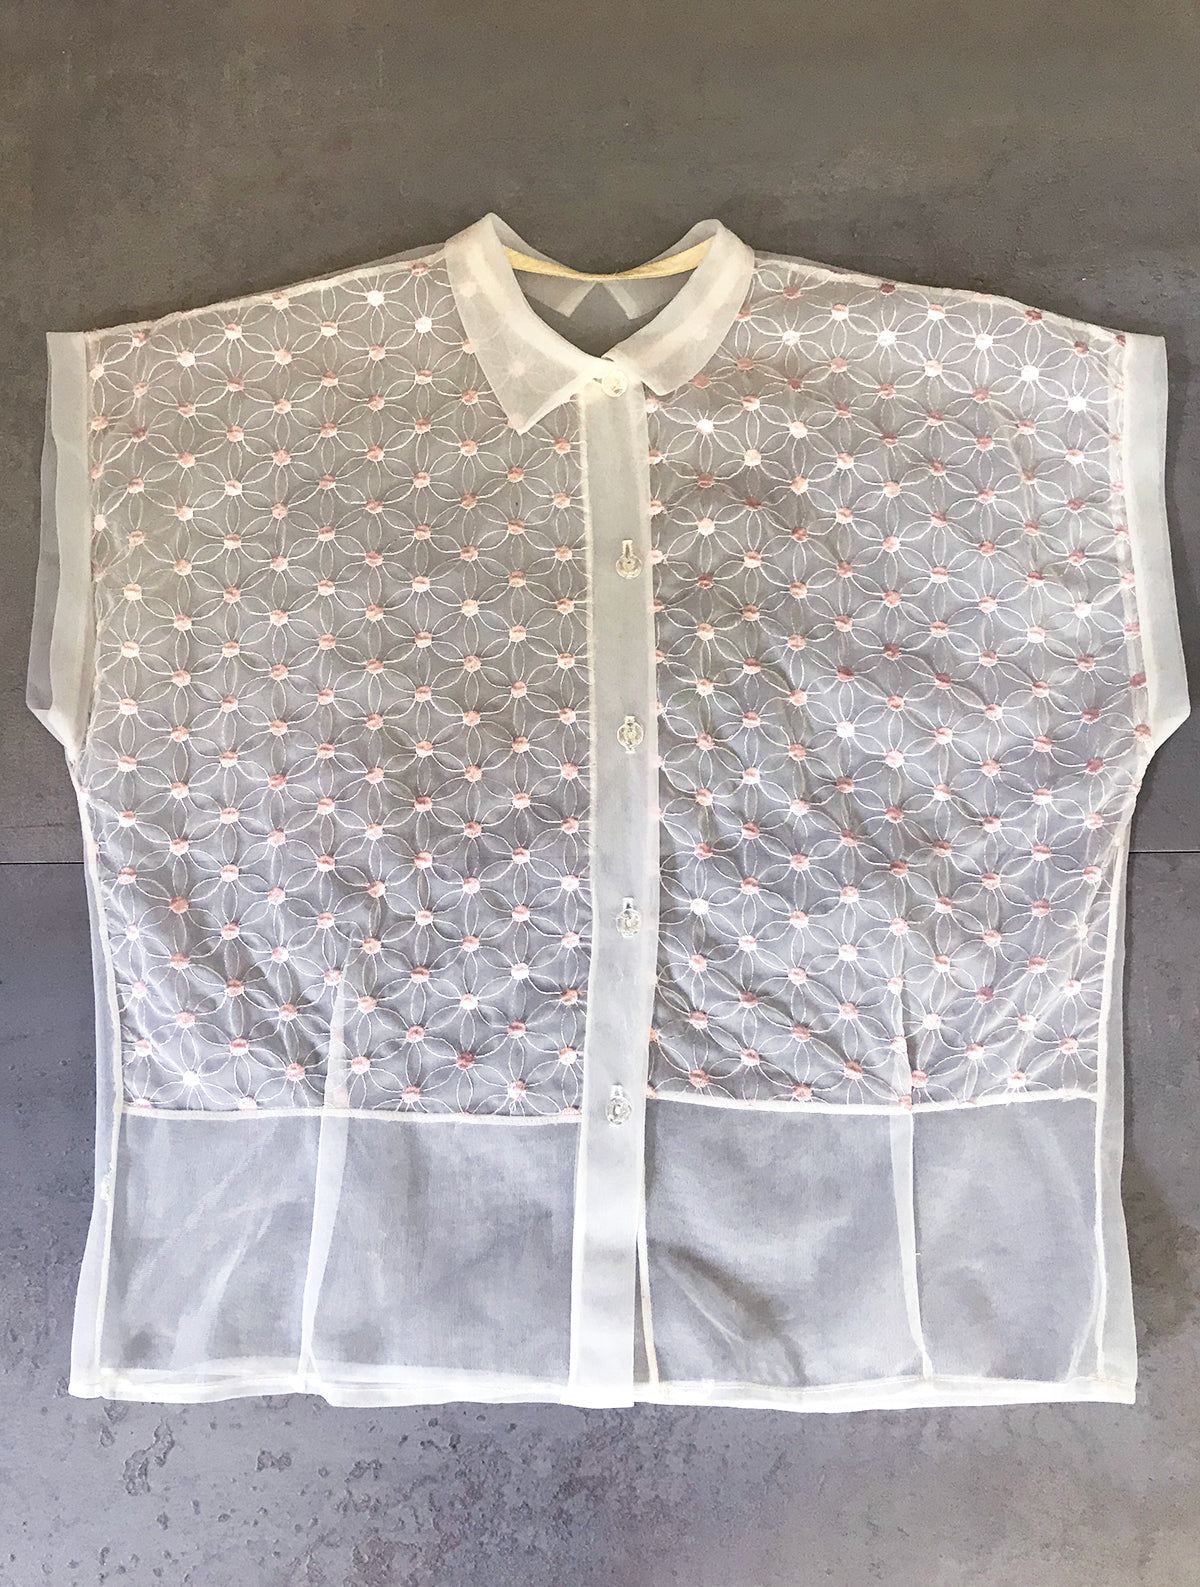 1950s Sheer White Nylon Blouse w Pink Embroidered Flower Dots